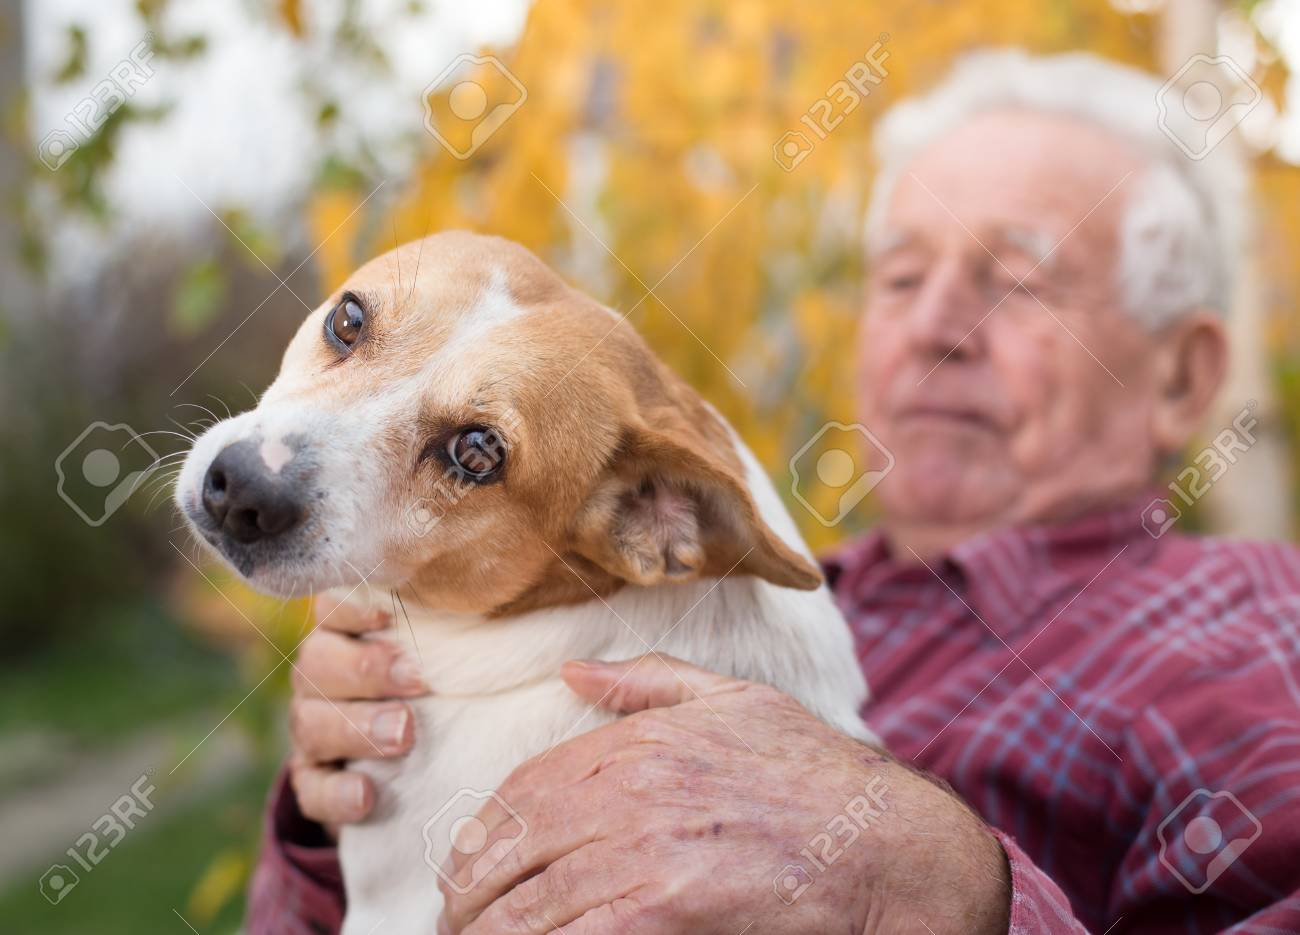 Cute dog cuddling on old man's lap in park in autumn. Pet love and care concept. Alternative therapy - 89821844